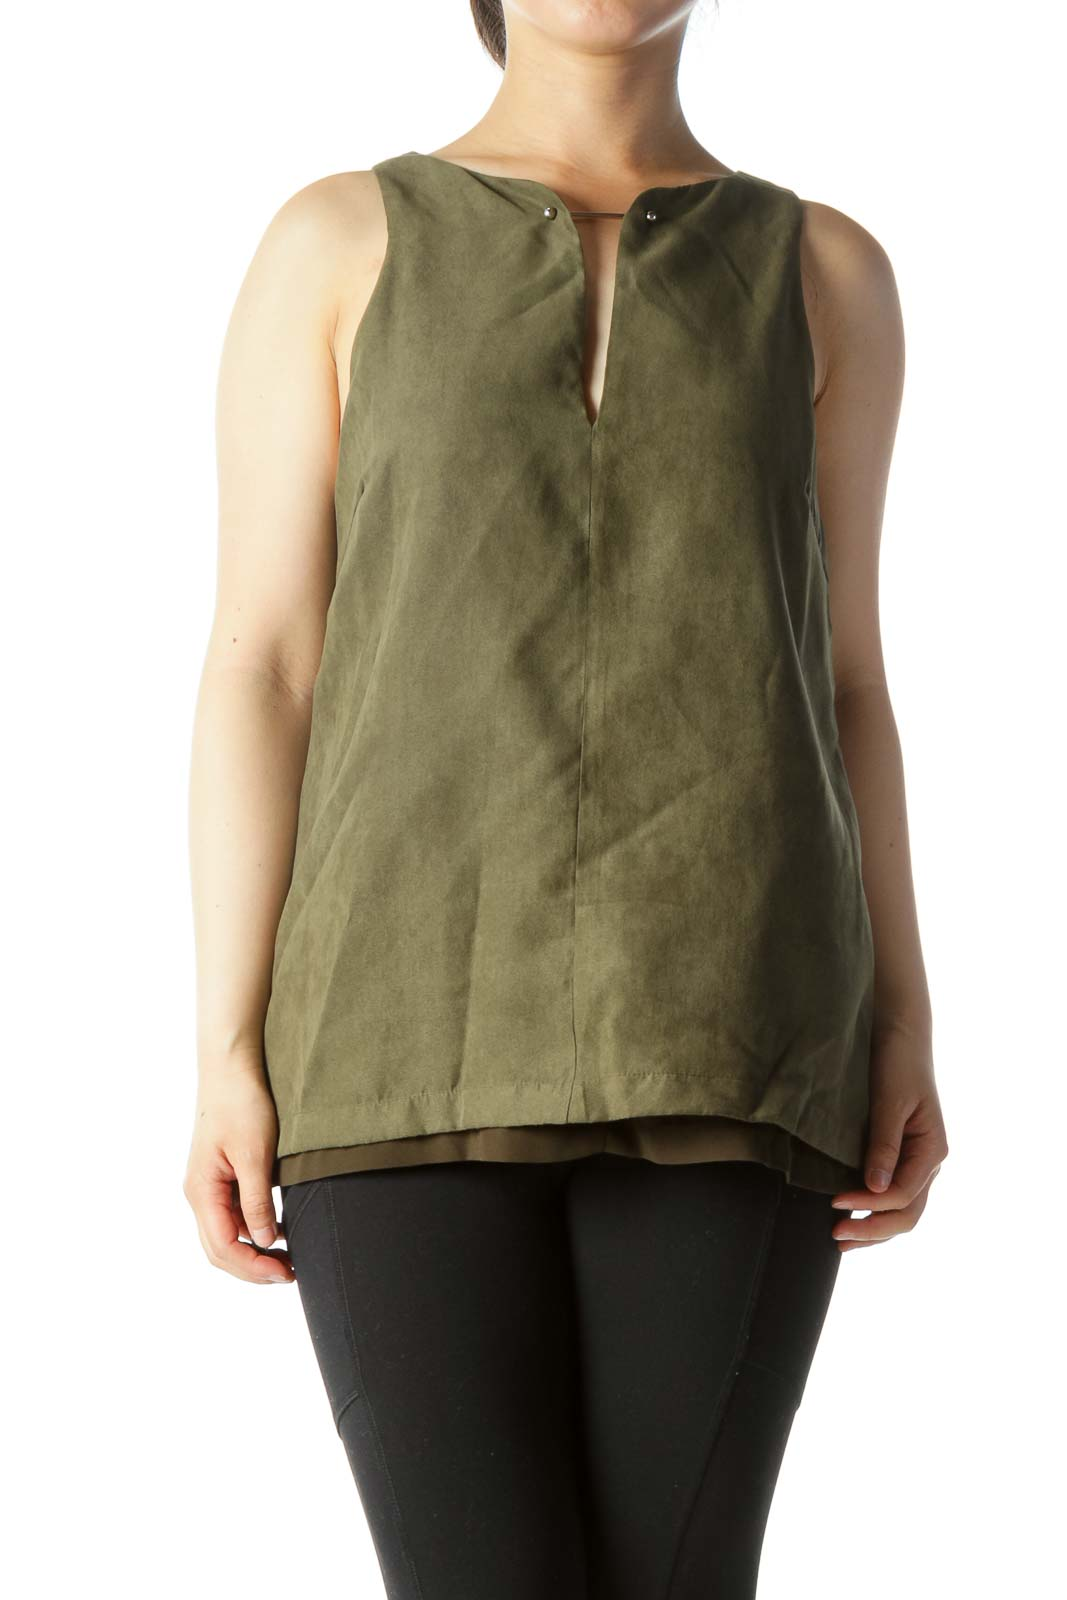 Olive Green Faux-Suede Metallic Detail Keyhole Lined Tank Top